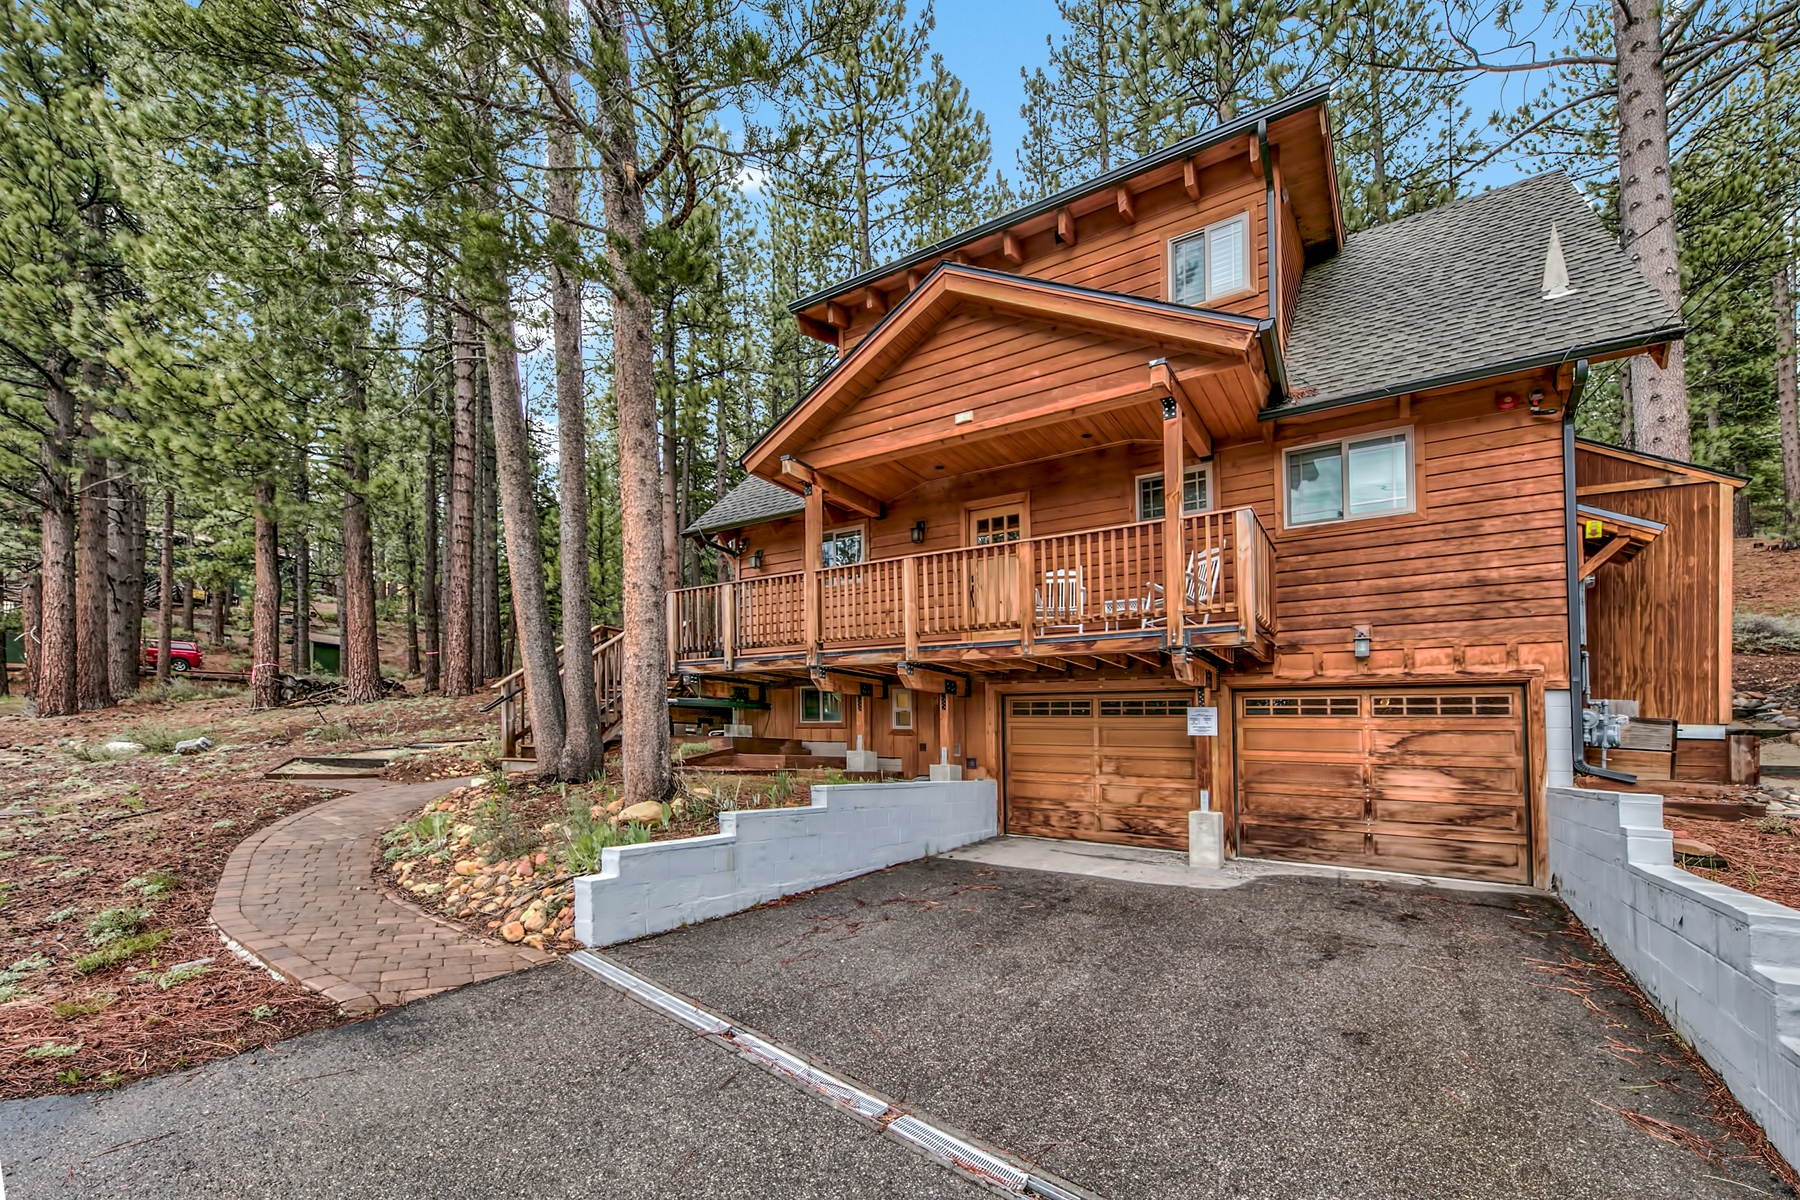 Property for Active at 2240 Columbine Trail, South Lake Tahoe, CA 96150 2240 Columbine Trail South Lake Tahoe, California 96150 United States